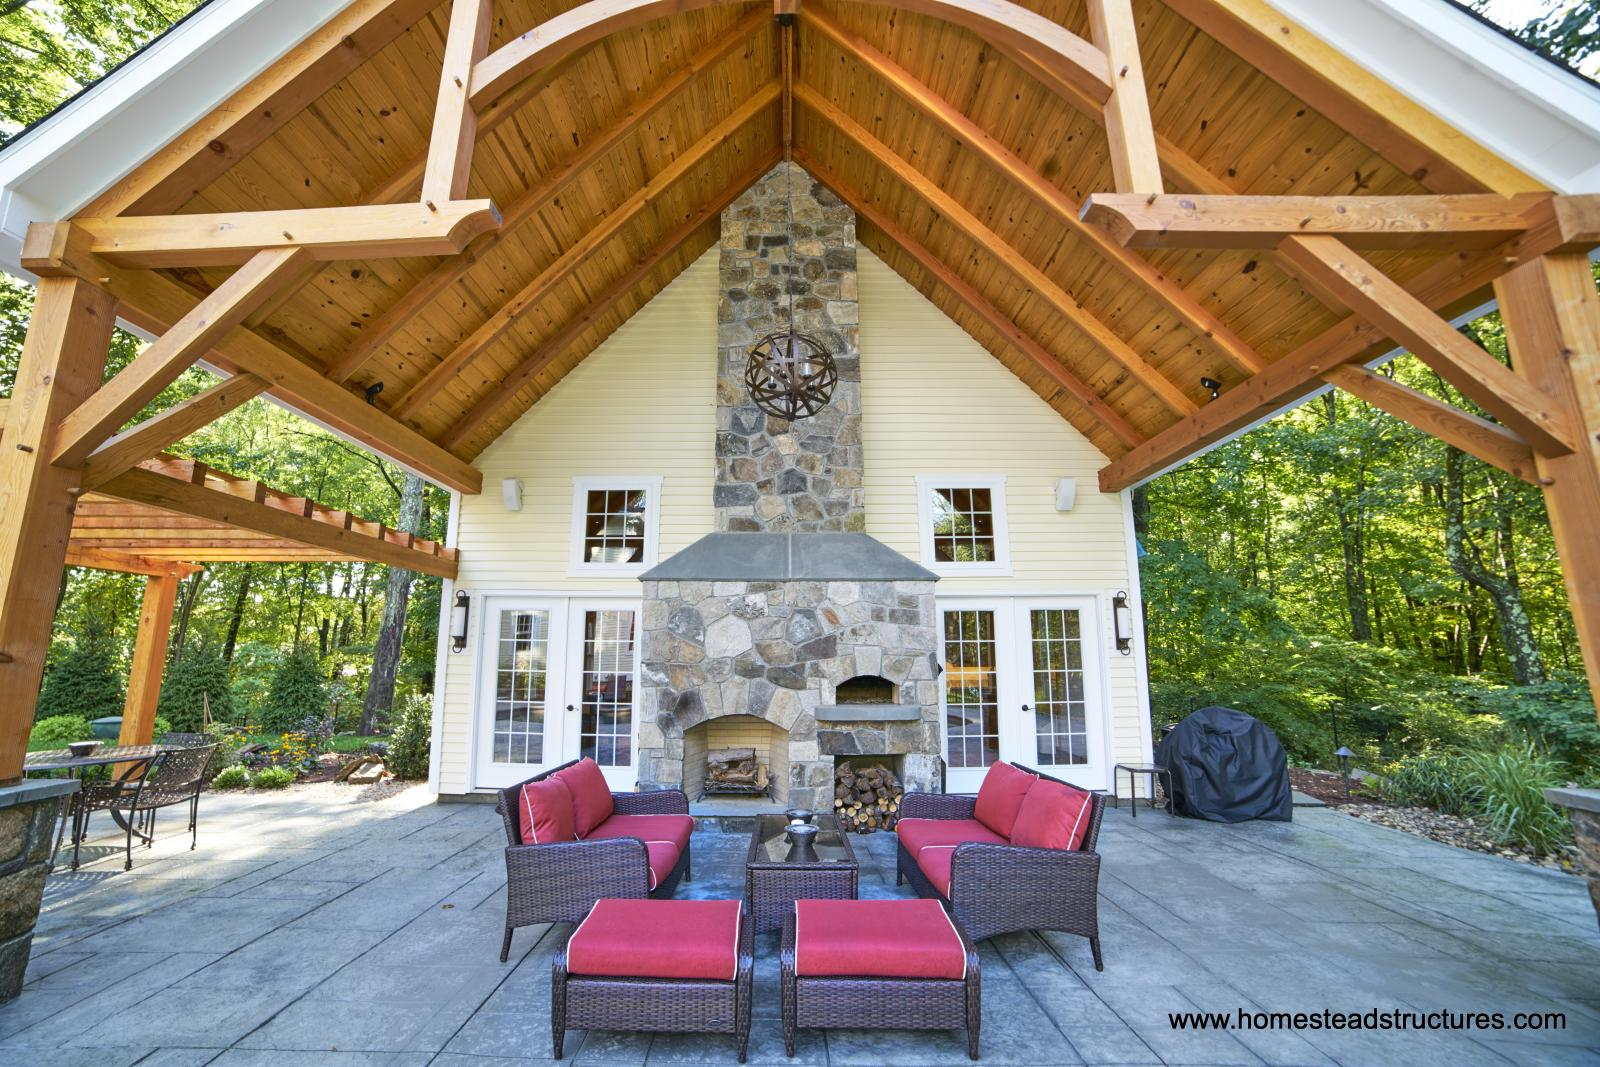 Custom Pool Houses | Homestead Structures